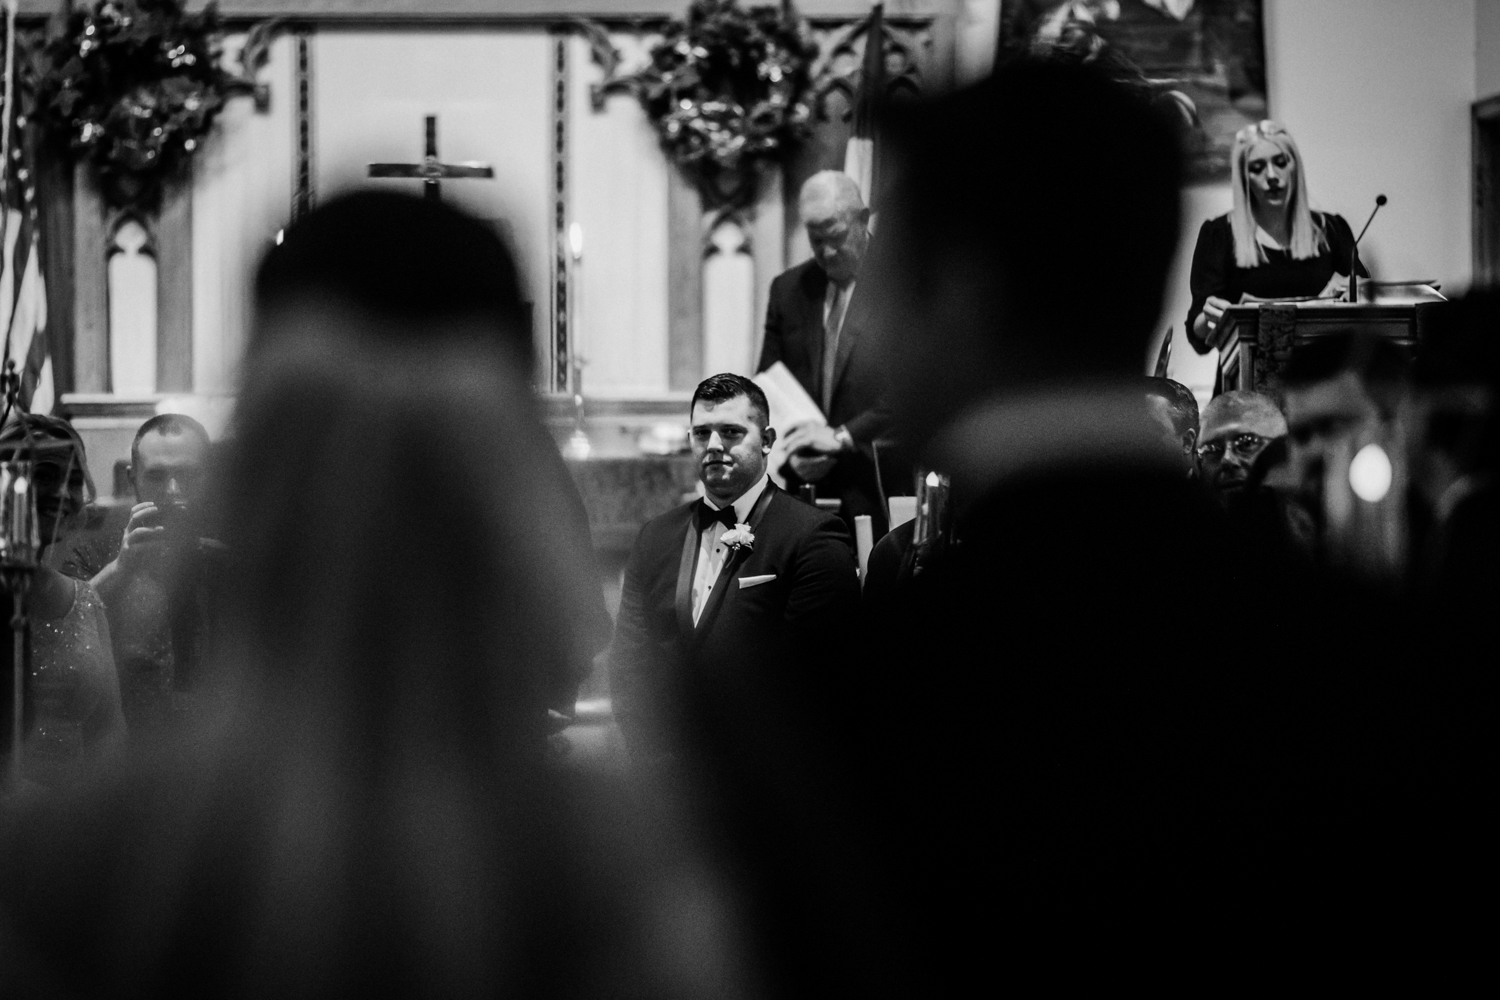 The-Mansion-NJ-Wedding-Jenna-Lynn-Photography-BriannaJimmy-CeremonyBW-59.jpg